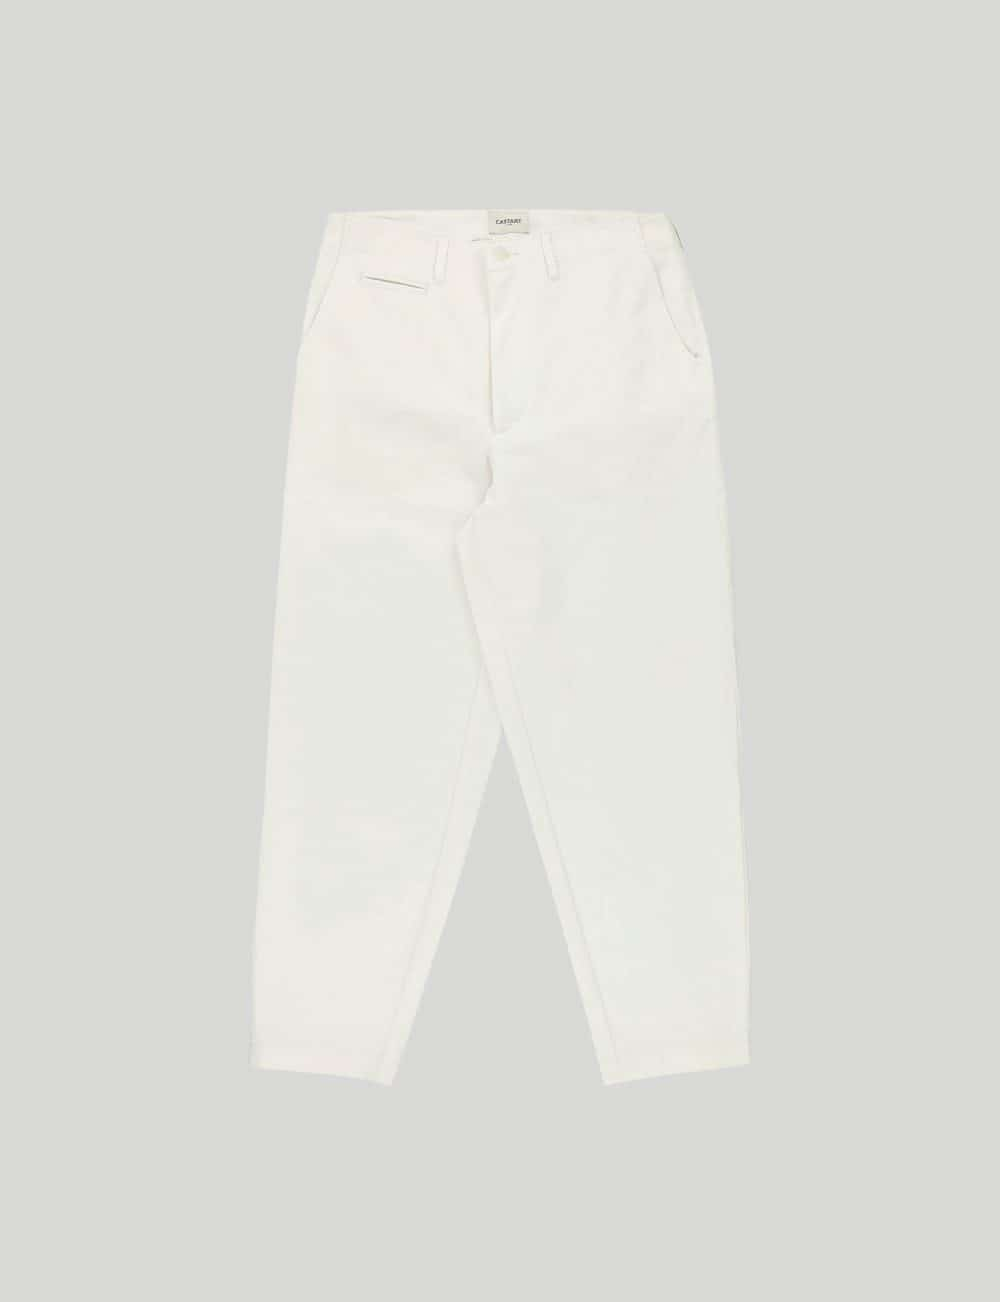 Castart - Beachspider Trouser - Off-white